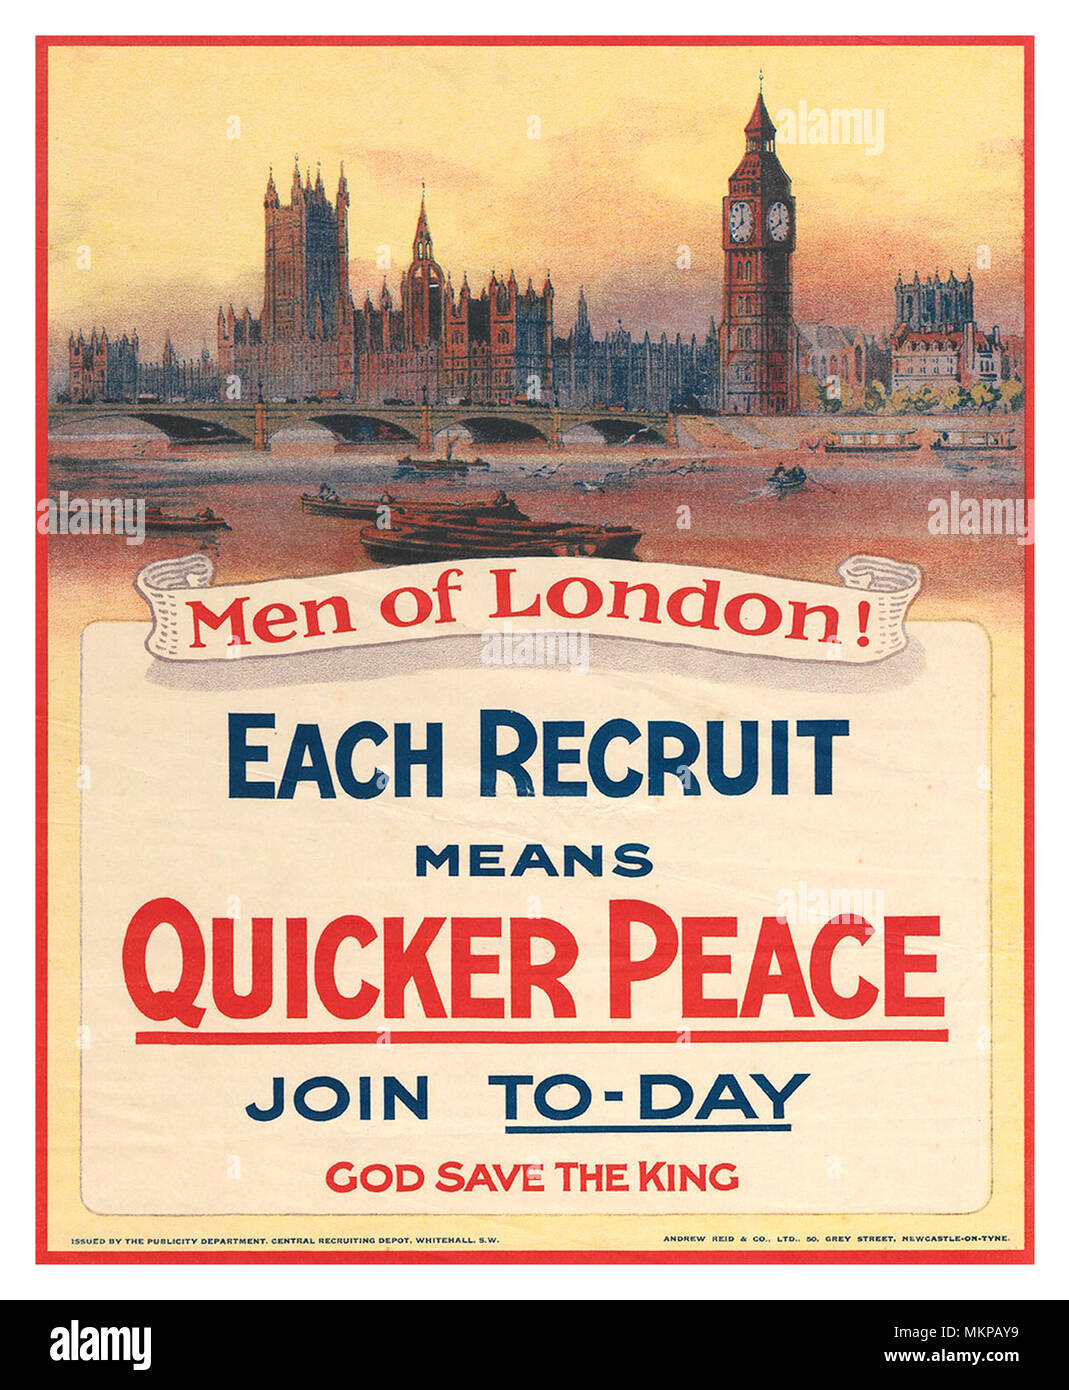 1915 WW1 British UK Recruitment Propaganda Poster 'Men of London! Each Recruit Means Quicker Peace. Join To-Day. God Save The King' Palace of Westminster, Houses Of Parliament London, UK - Stock Image